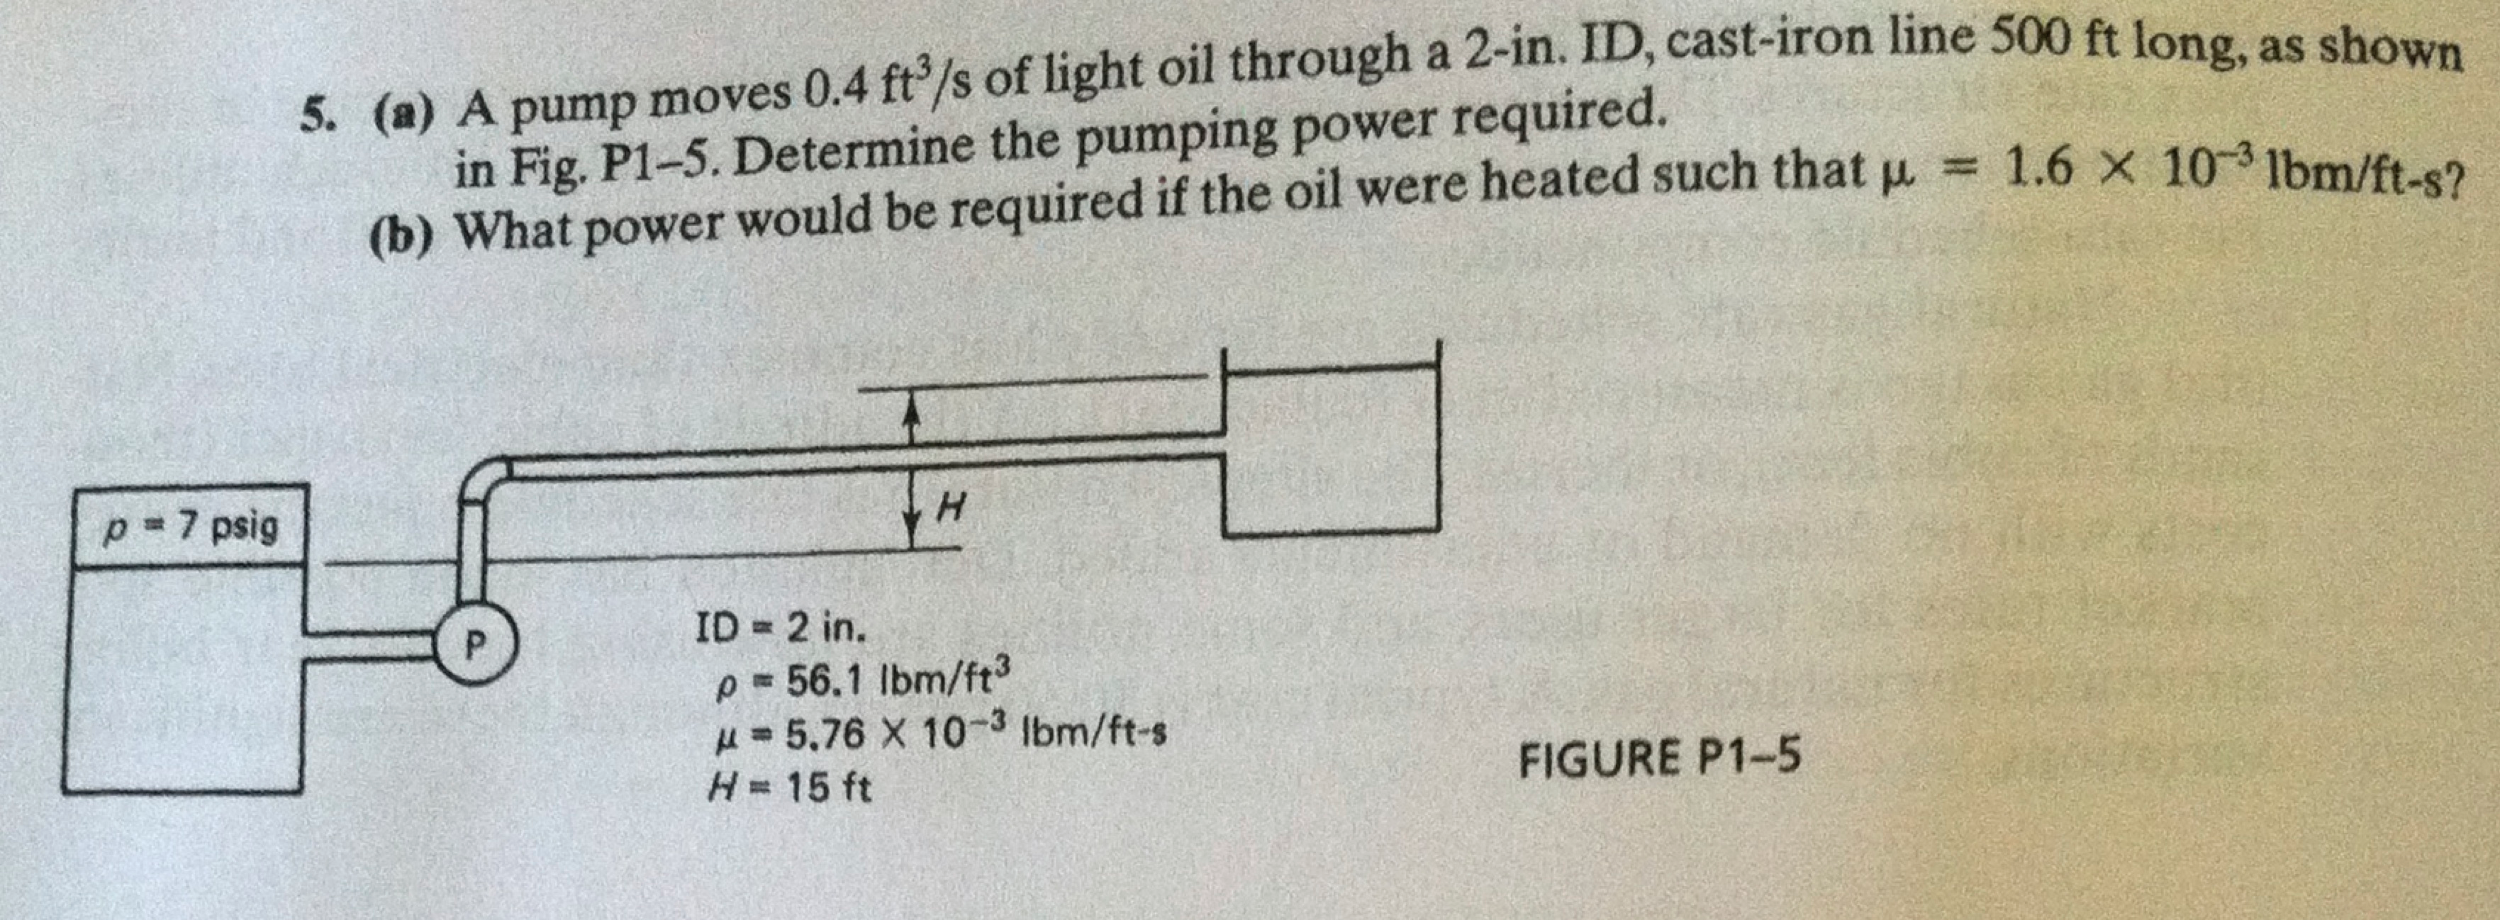 5. (a) A pump moves 0.4 ft3/s of light oil through